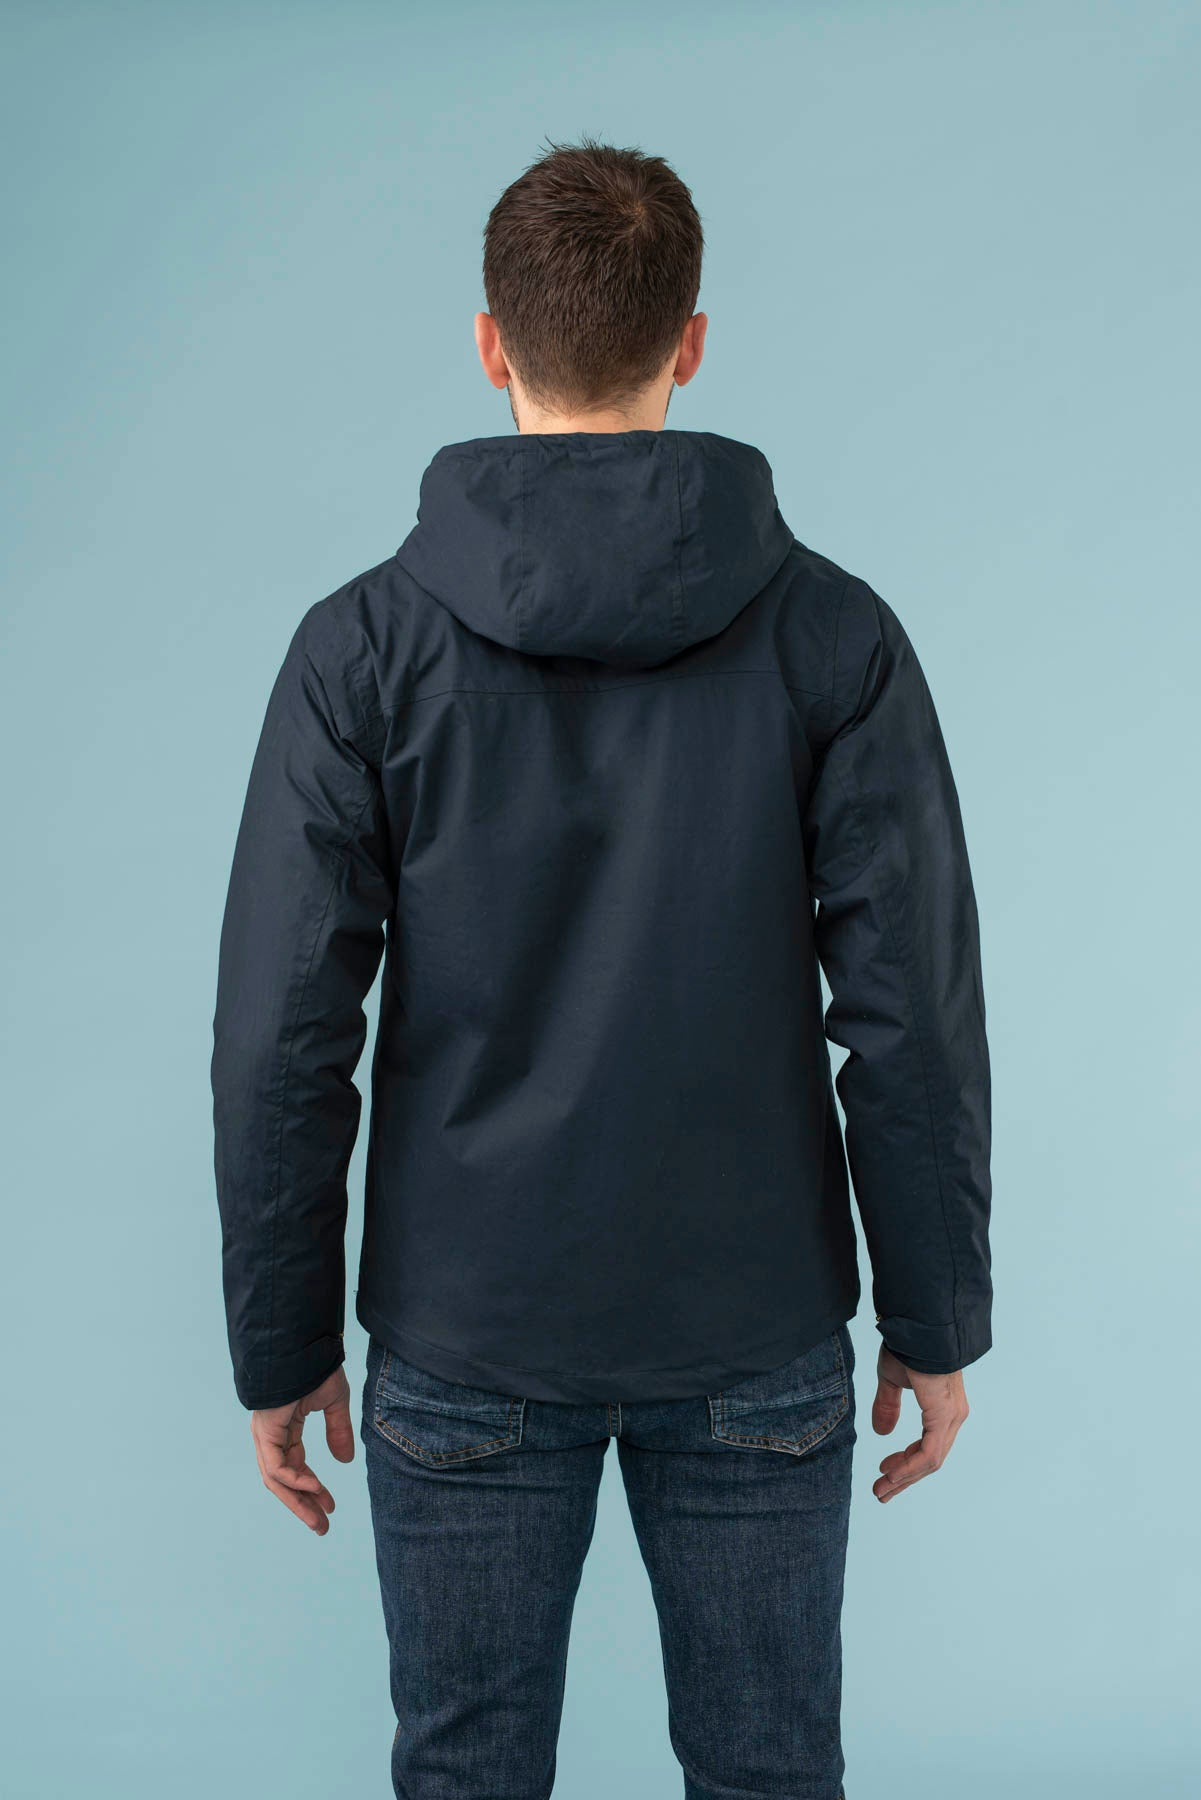 Faroe Coat. Men's Warm Raincoat in Navy | Lighthouse